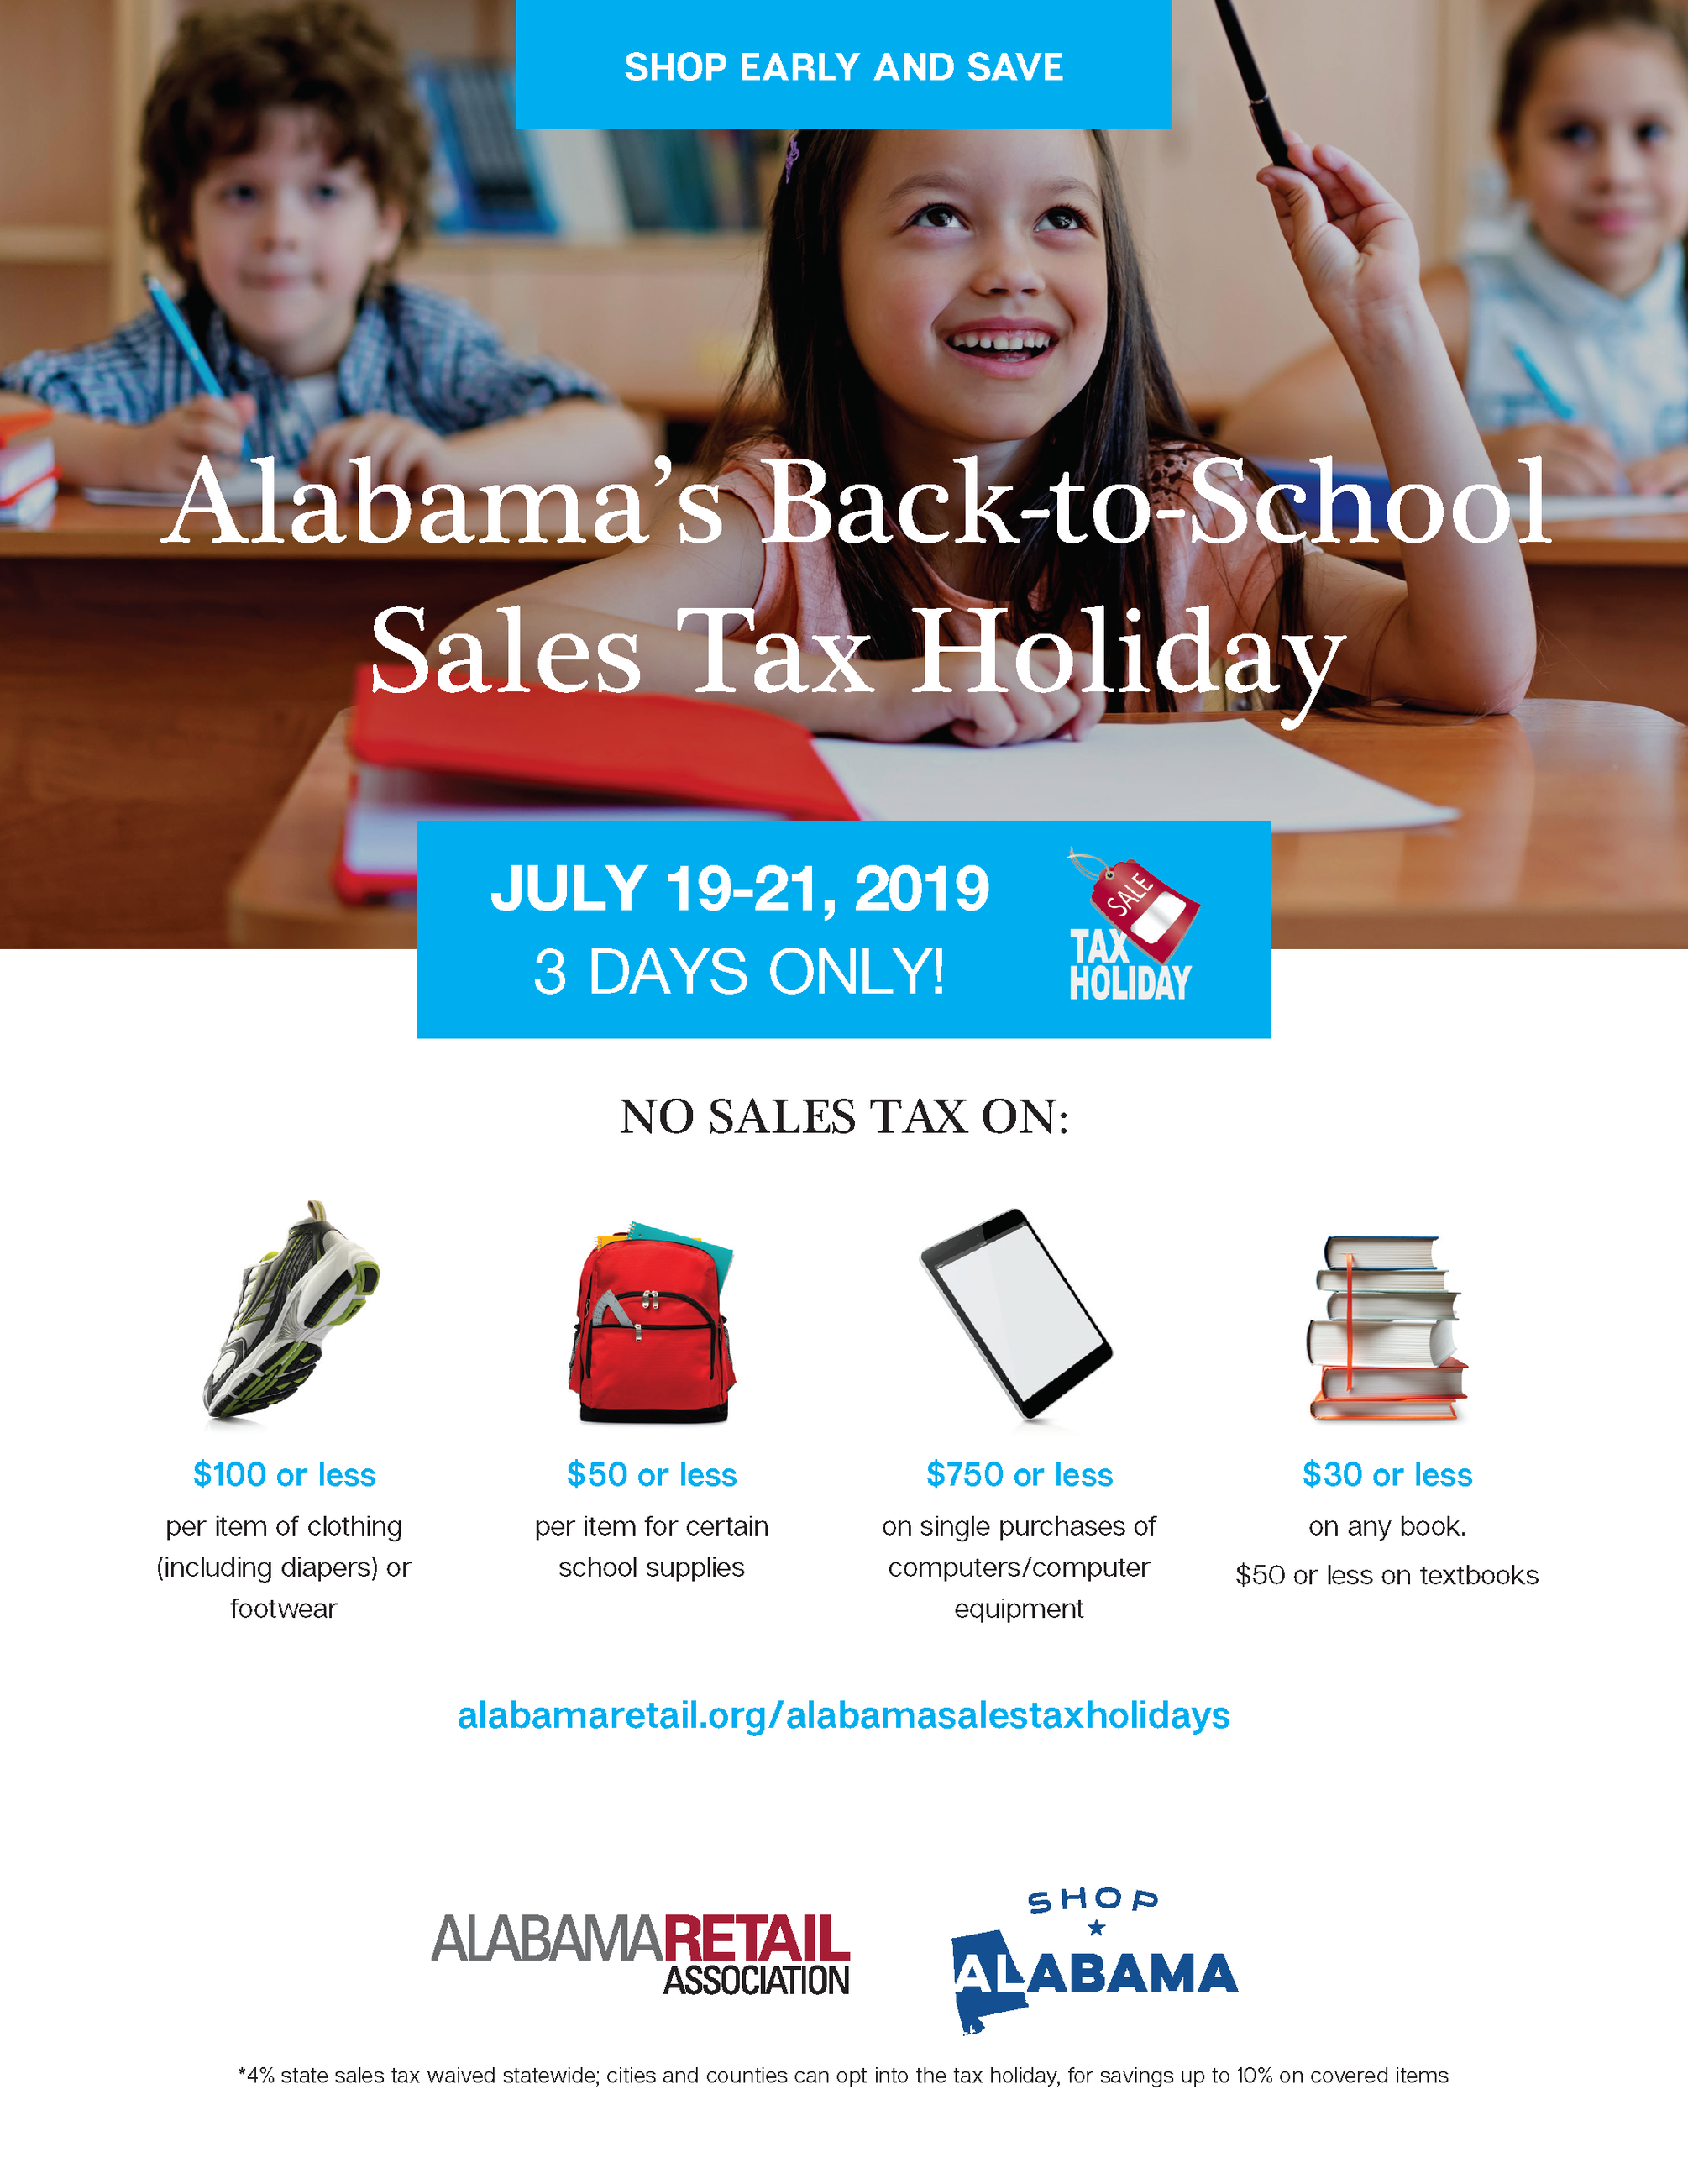 Sales Tax Holiday 2019 - Back to School July 19-21